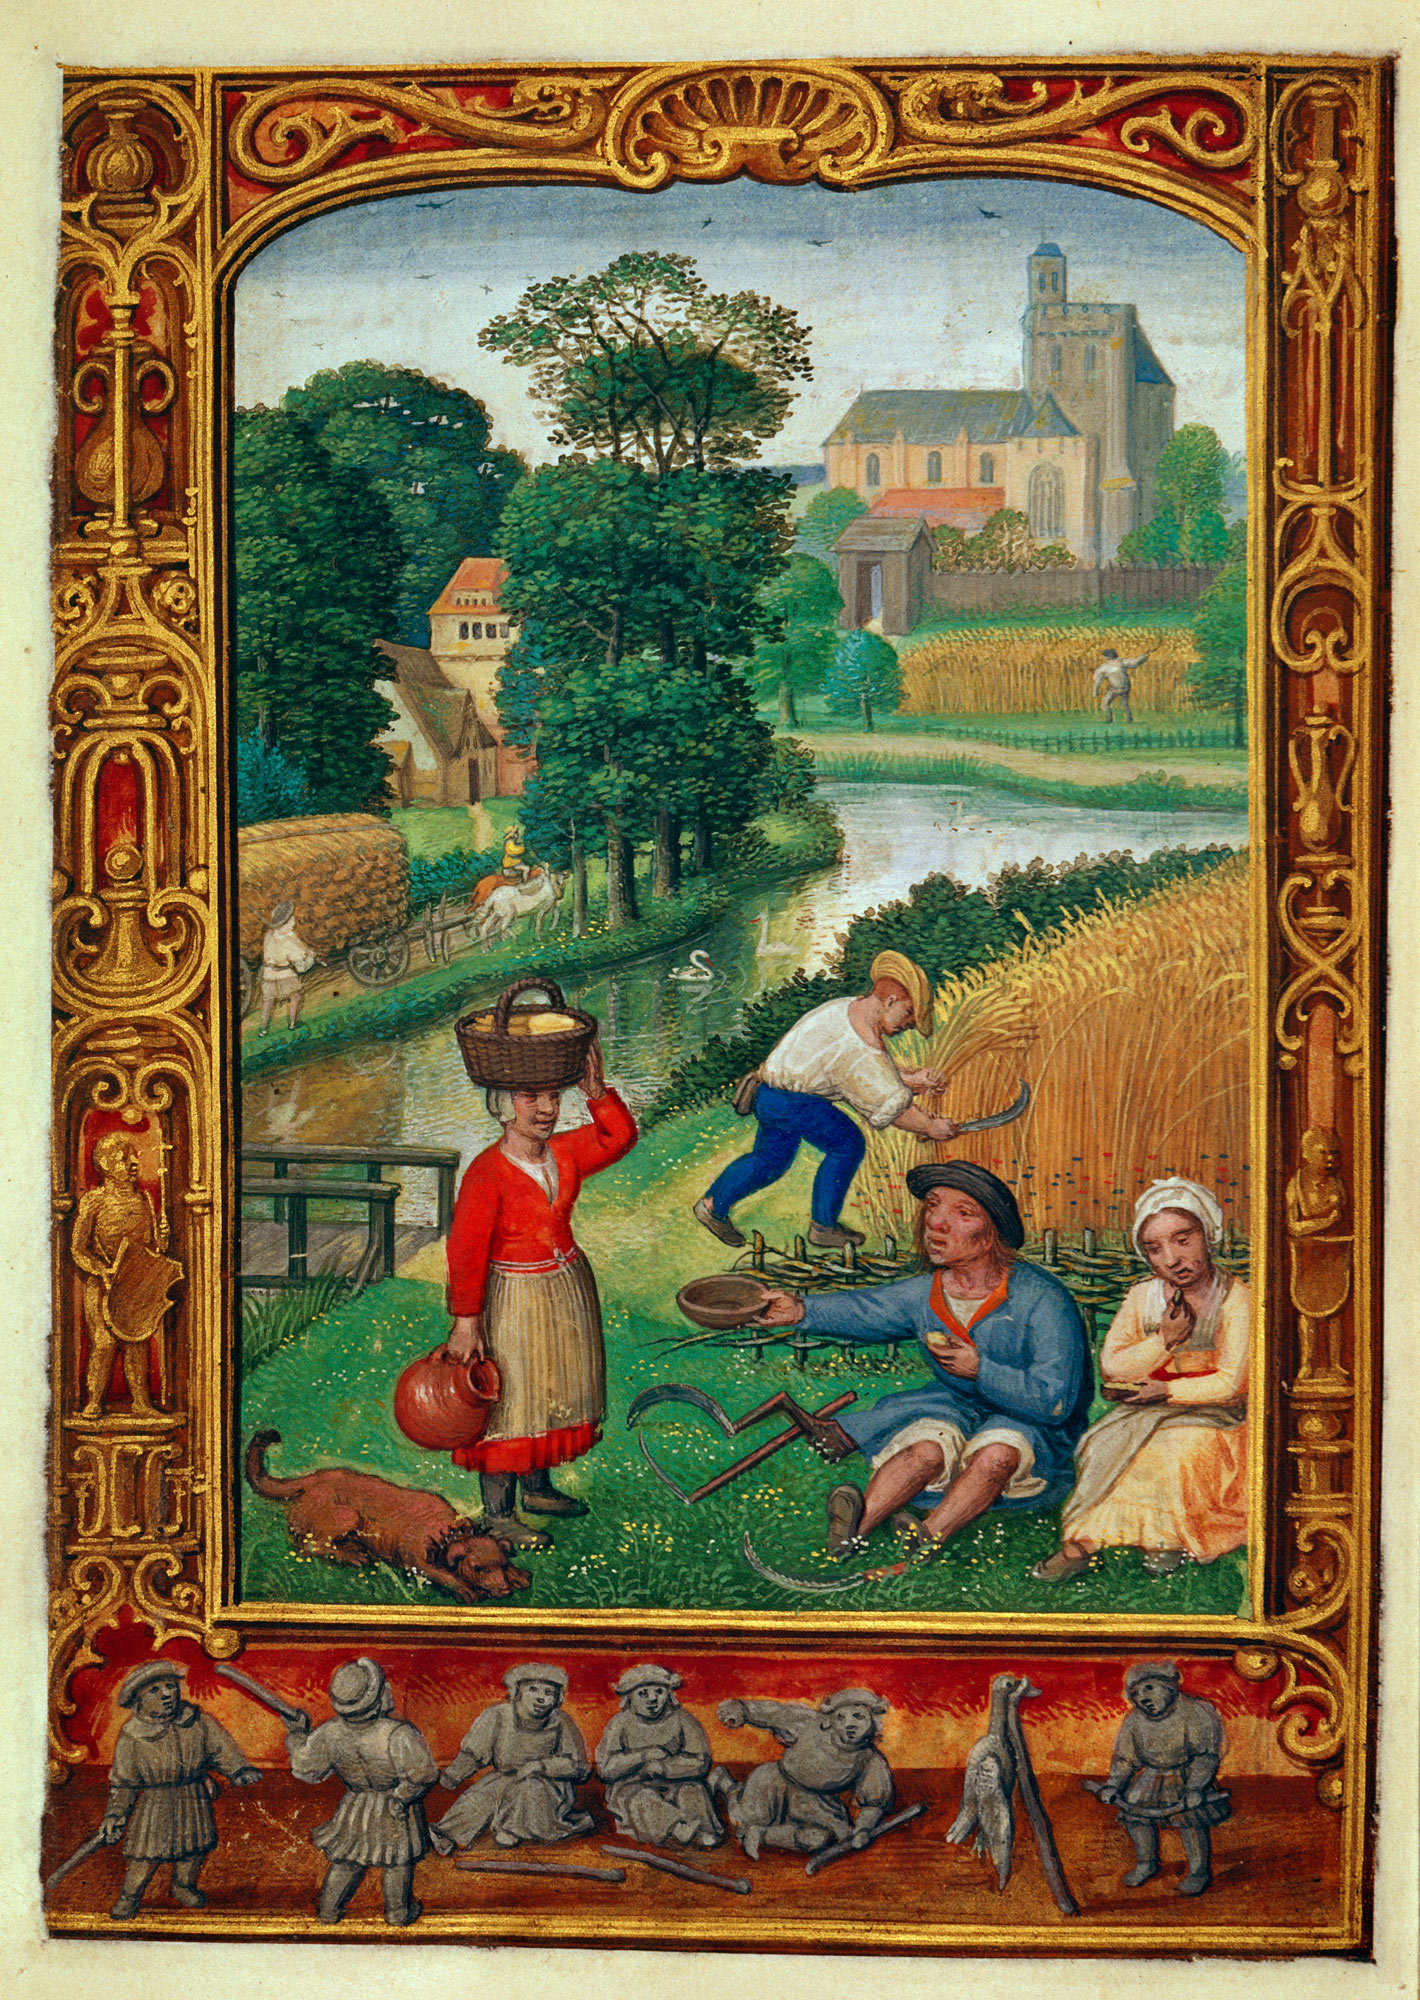 peasants in the middle ages During the middle ages (medieval times) the lives of villagers (serfs) were far from easy hard work and continuous effort – required to ensure the necessities of life – characterised most aspects of their existence.